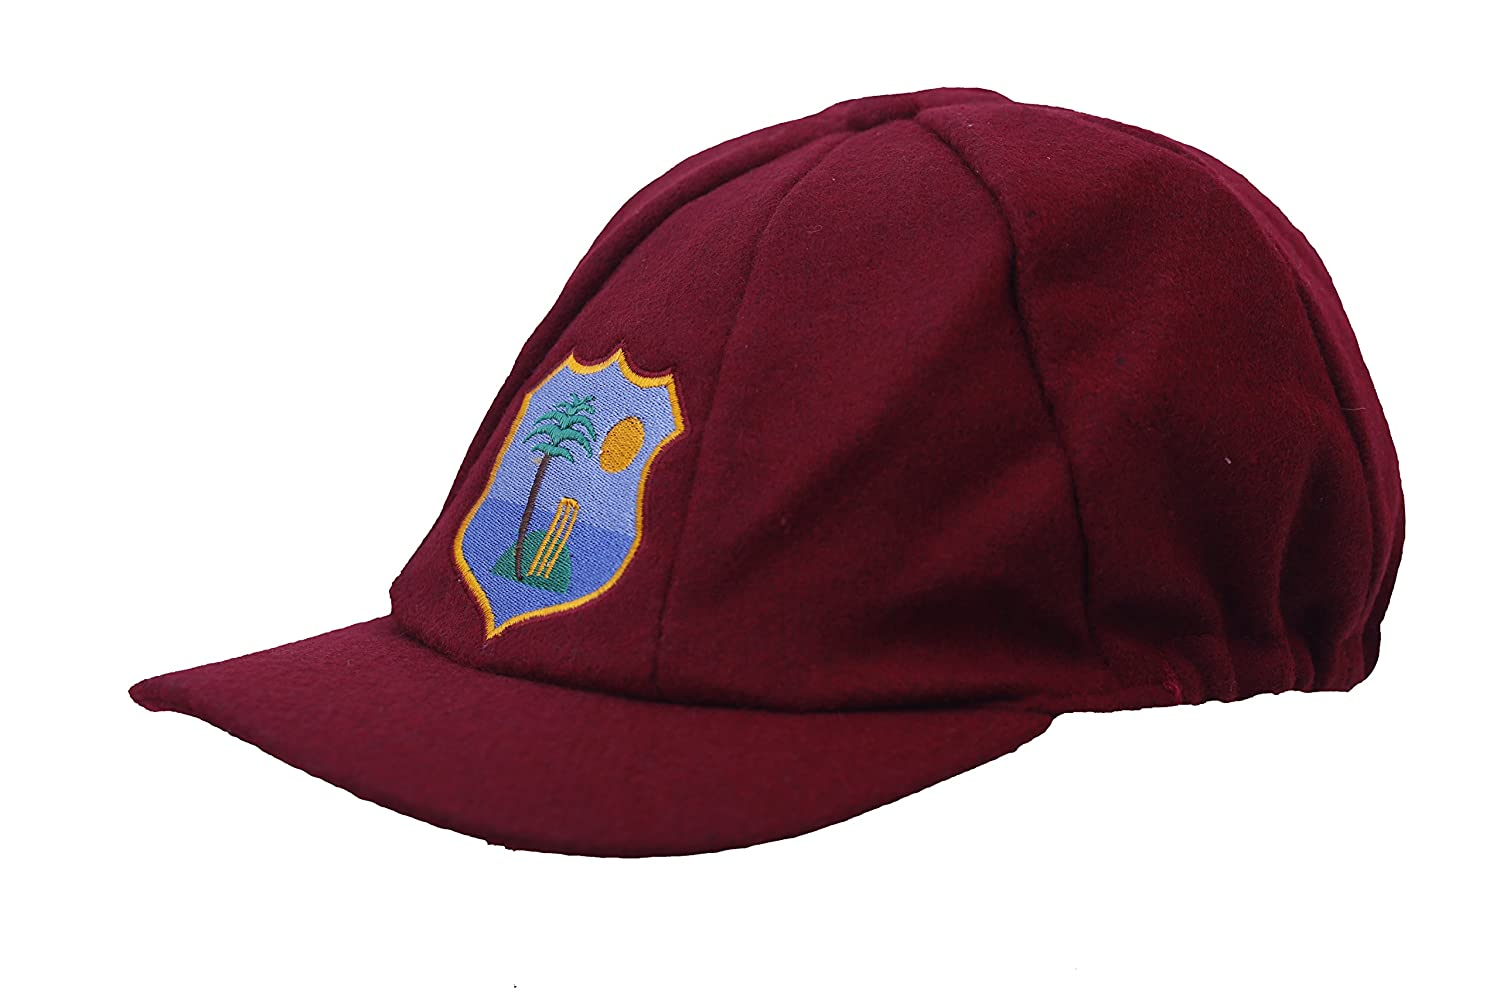 WEST INDIES TEST CRICKET CAP MELTON WOOL CLASSICAL TRADITIONAL 57-62CM ELASTICATED BACK ADAM SPORTS